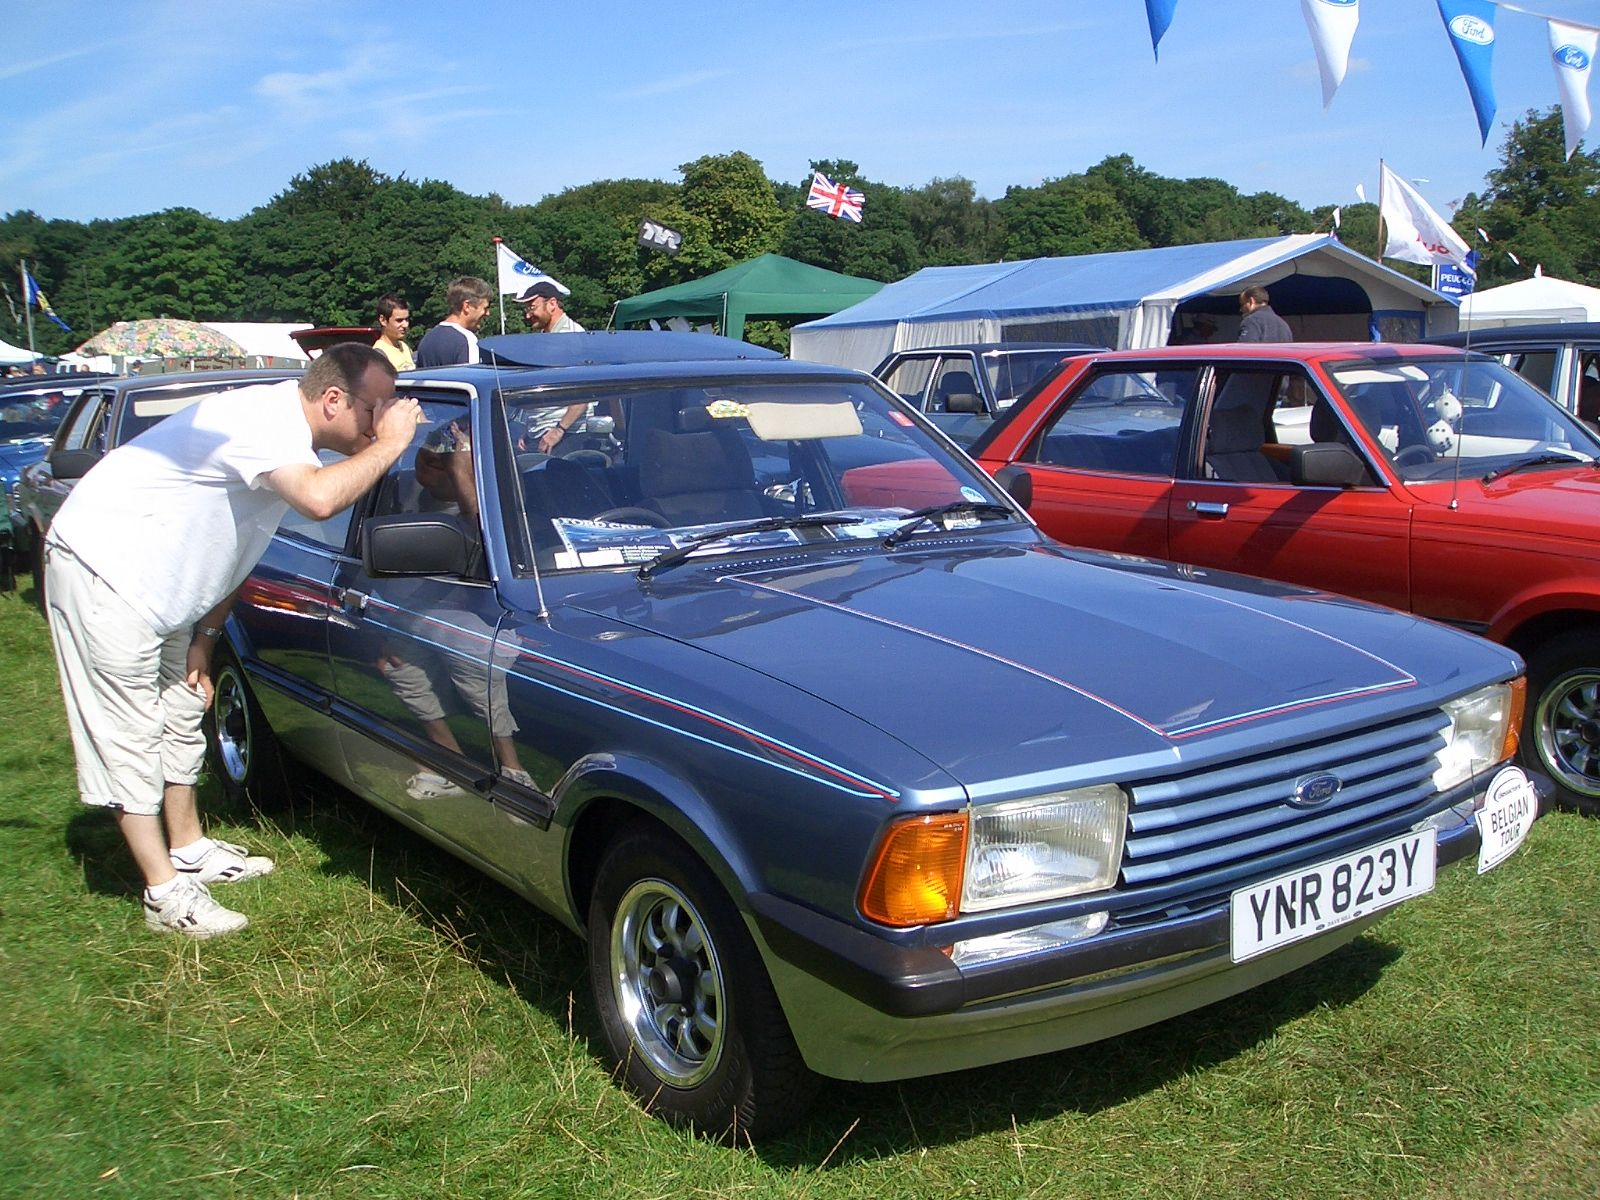 Ford Cortina Mk V I Owned 3 Of These In The Late 80 S And Early